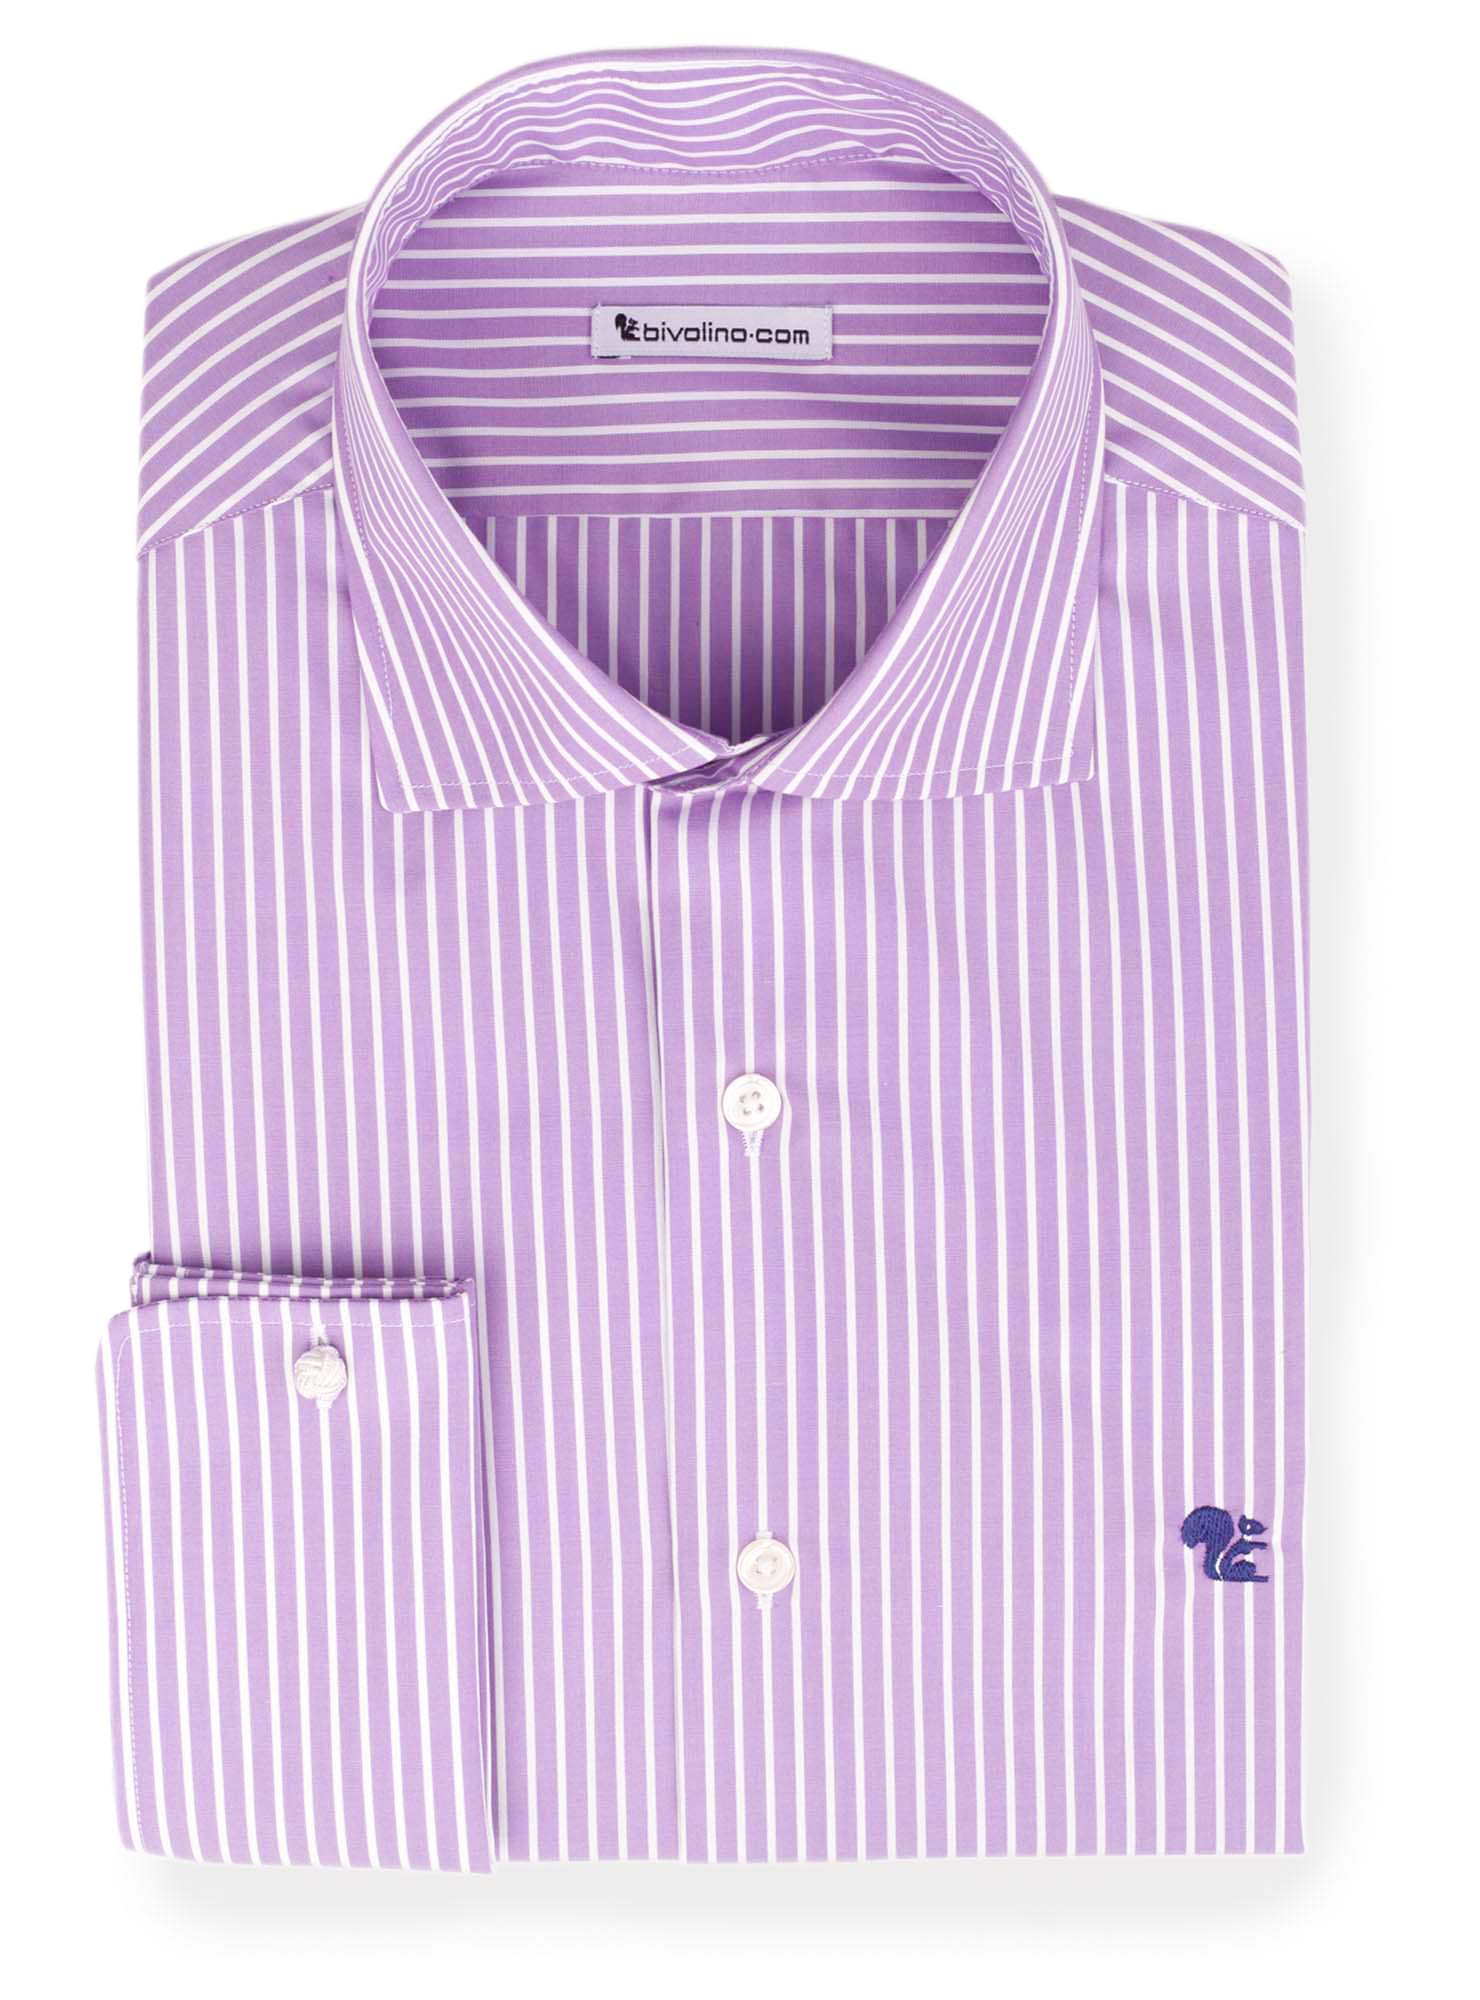 TUFIANO - Poplin lila striped shirt - Tufo 6